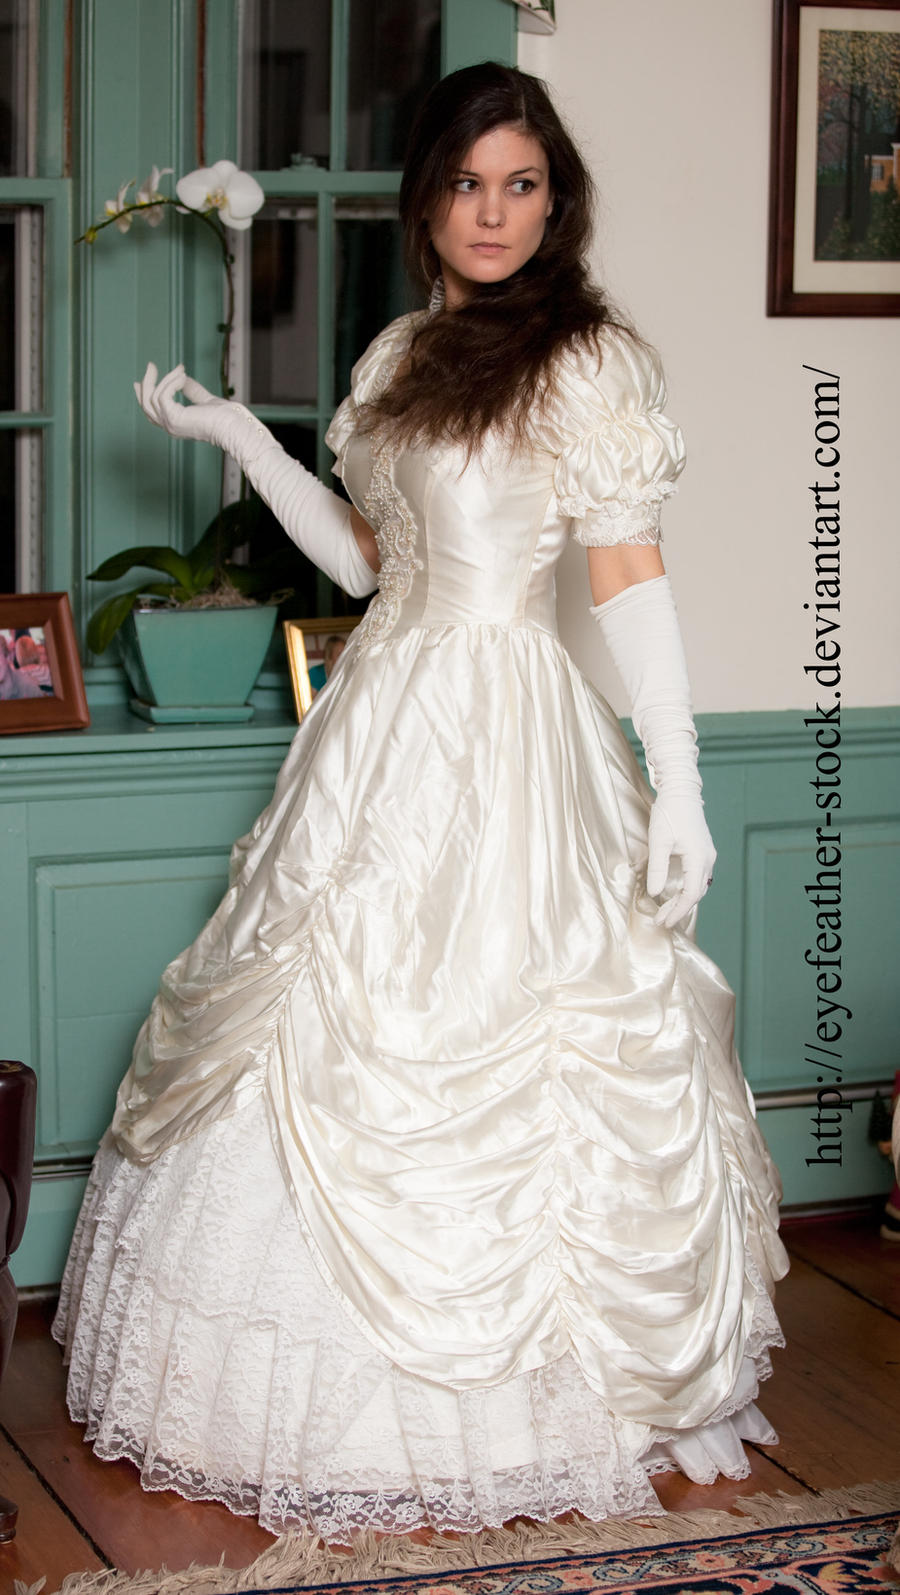 hair down wedding gown by eyefeather-stock